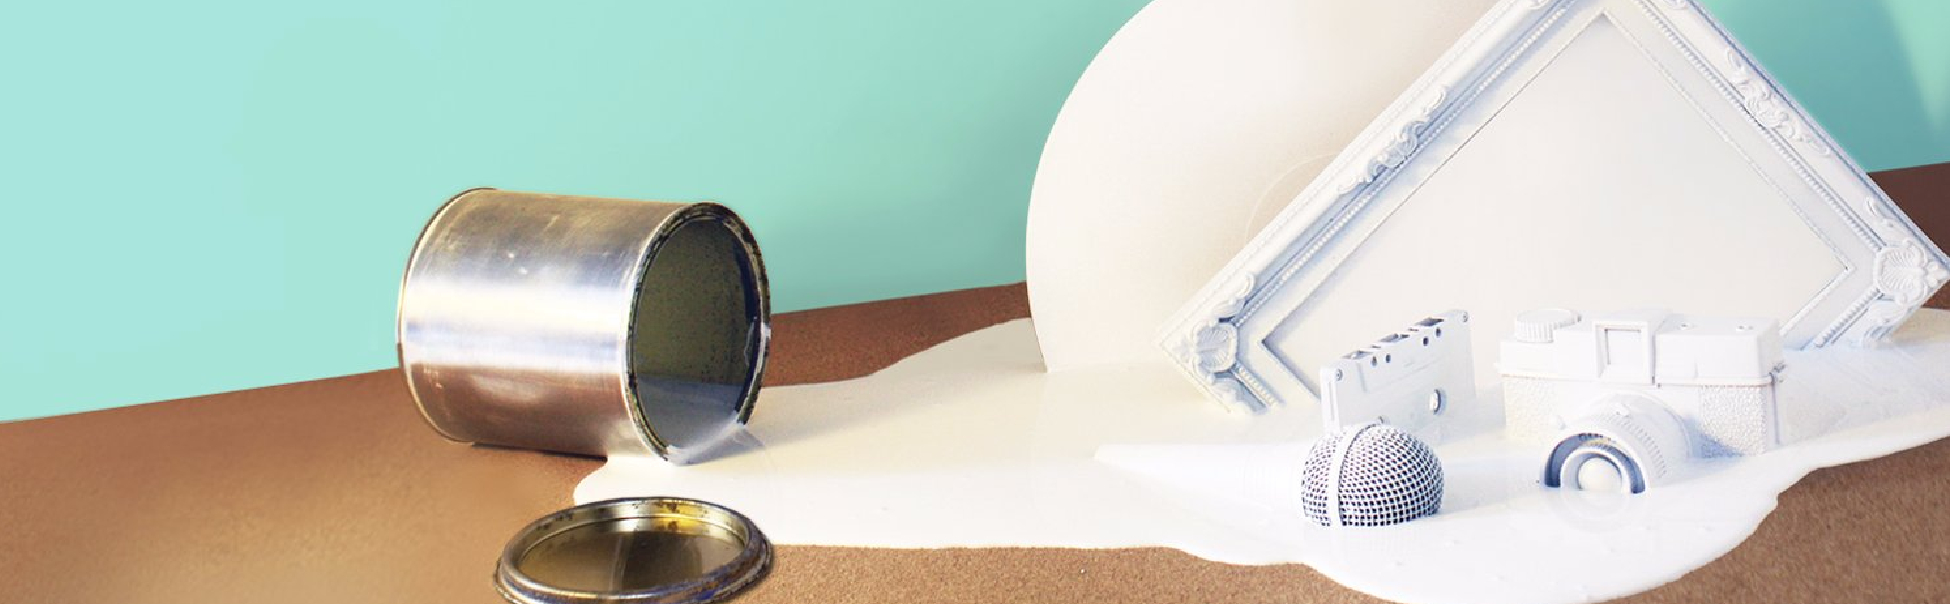 Tipped over tin of white paint with a paint-covered circle, picture frame, cassette tape, microphone and a vintage camera, on a wooden table with a bright turquoise background.